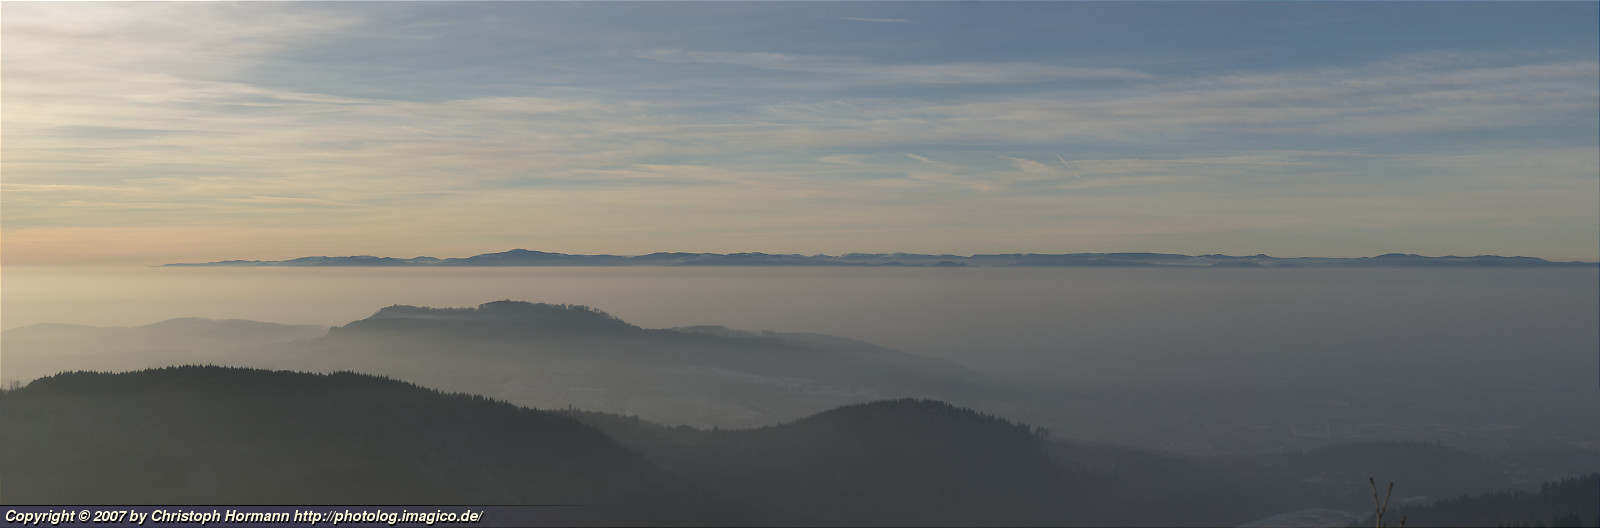 image 14: Winter fog in the Rhine valley and clear sight above onto the Vosges Mountains